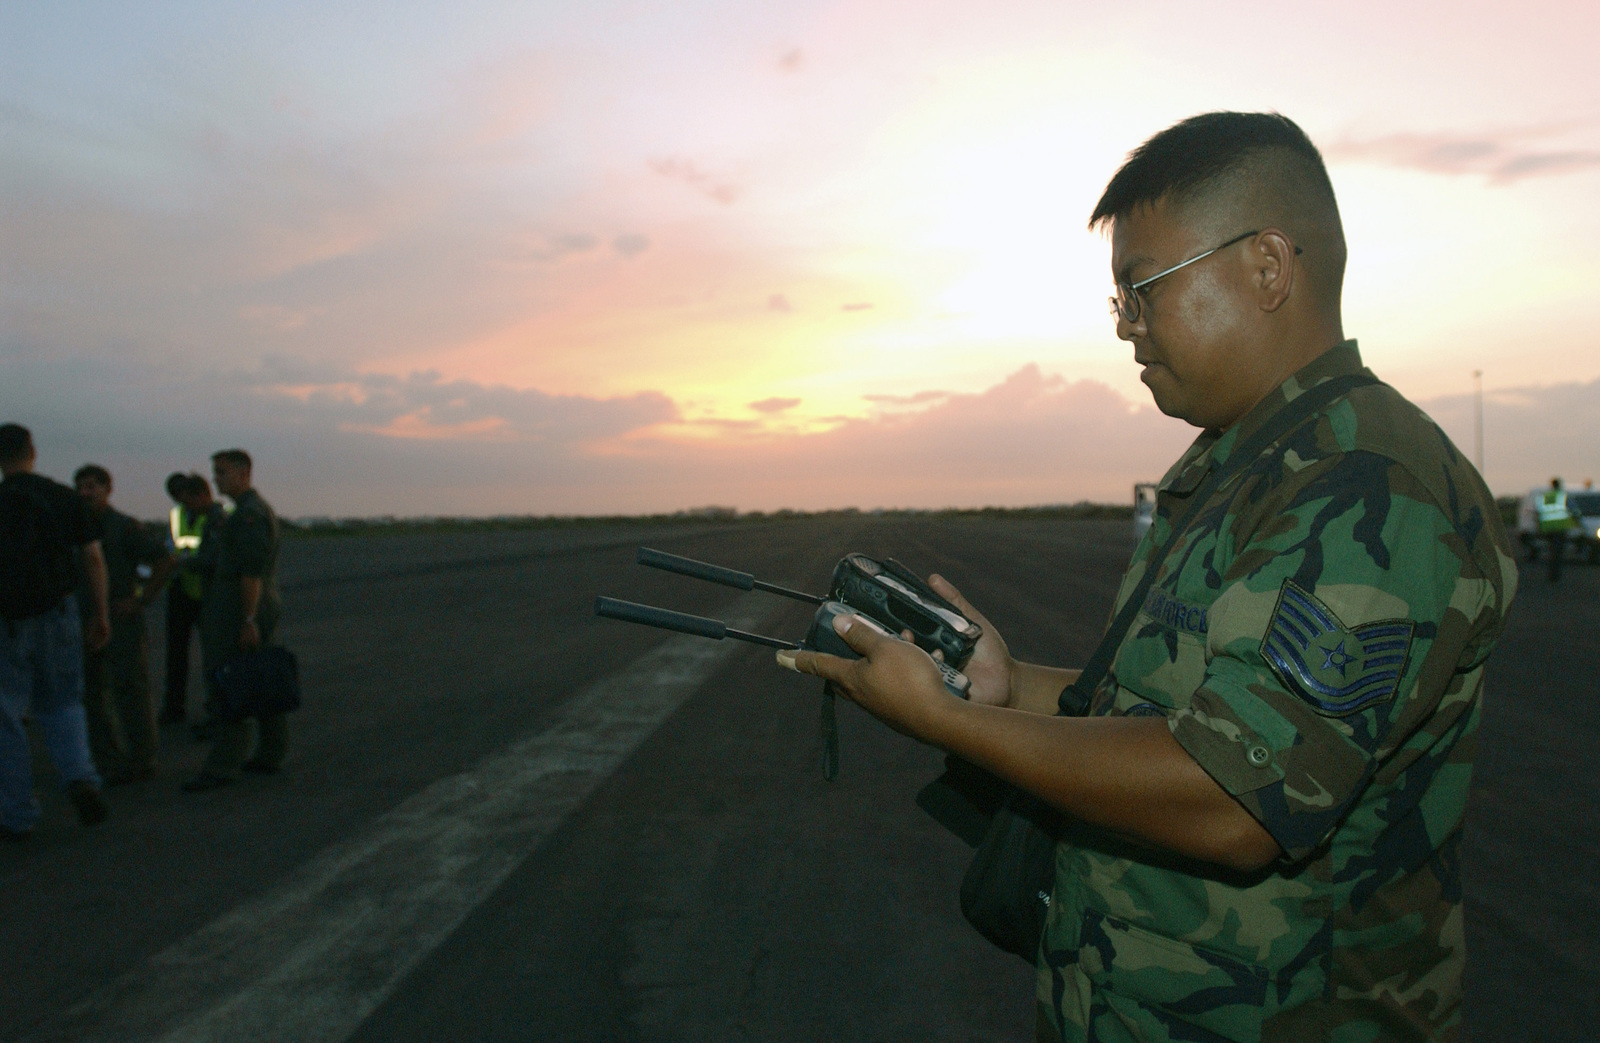 US Air Force (USAF) Technical Sergeant (TSGT) Rodel Delacruz, deployed from the 52nd Communications Squadron (CS), Spangdahlem Air Base (AB), Germany (DEU), verifies that both satellite telephones initialize upon arrival at the Dakar International Airport in Senegal, Africa